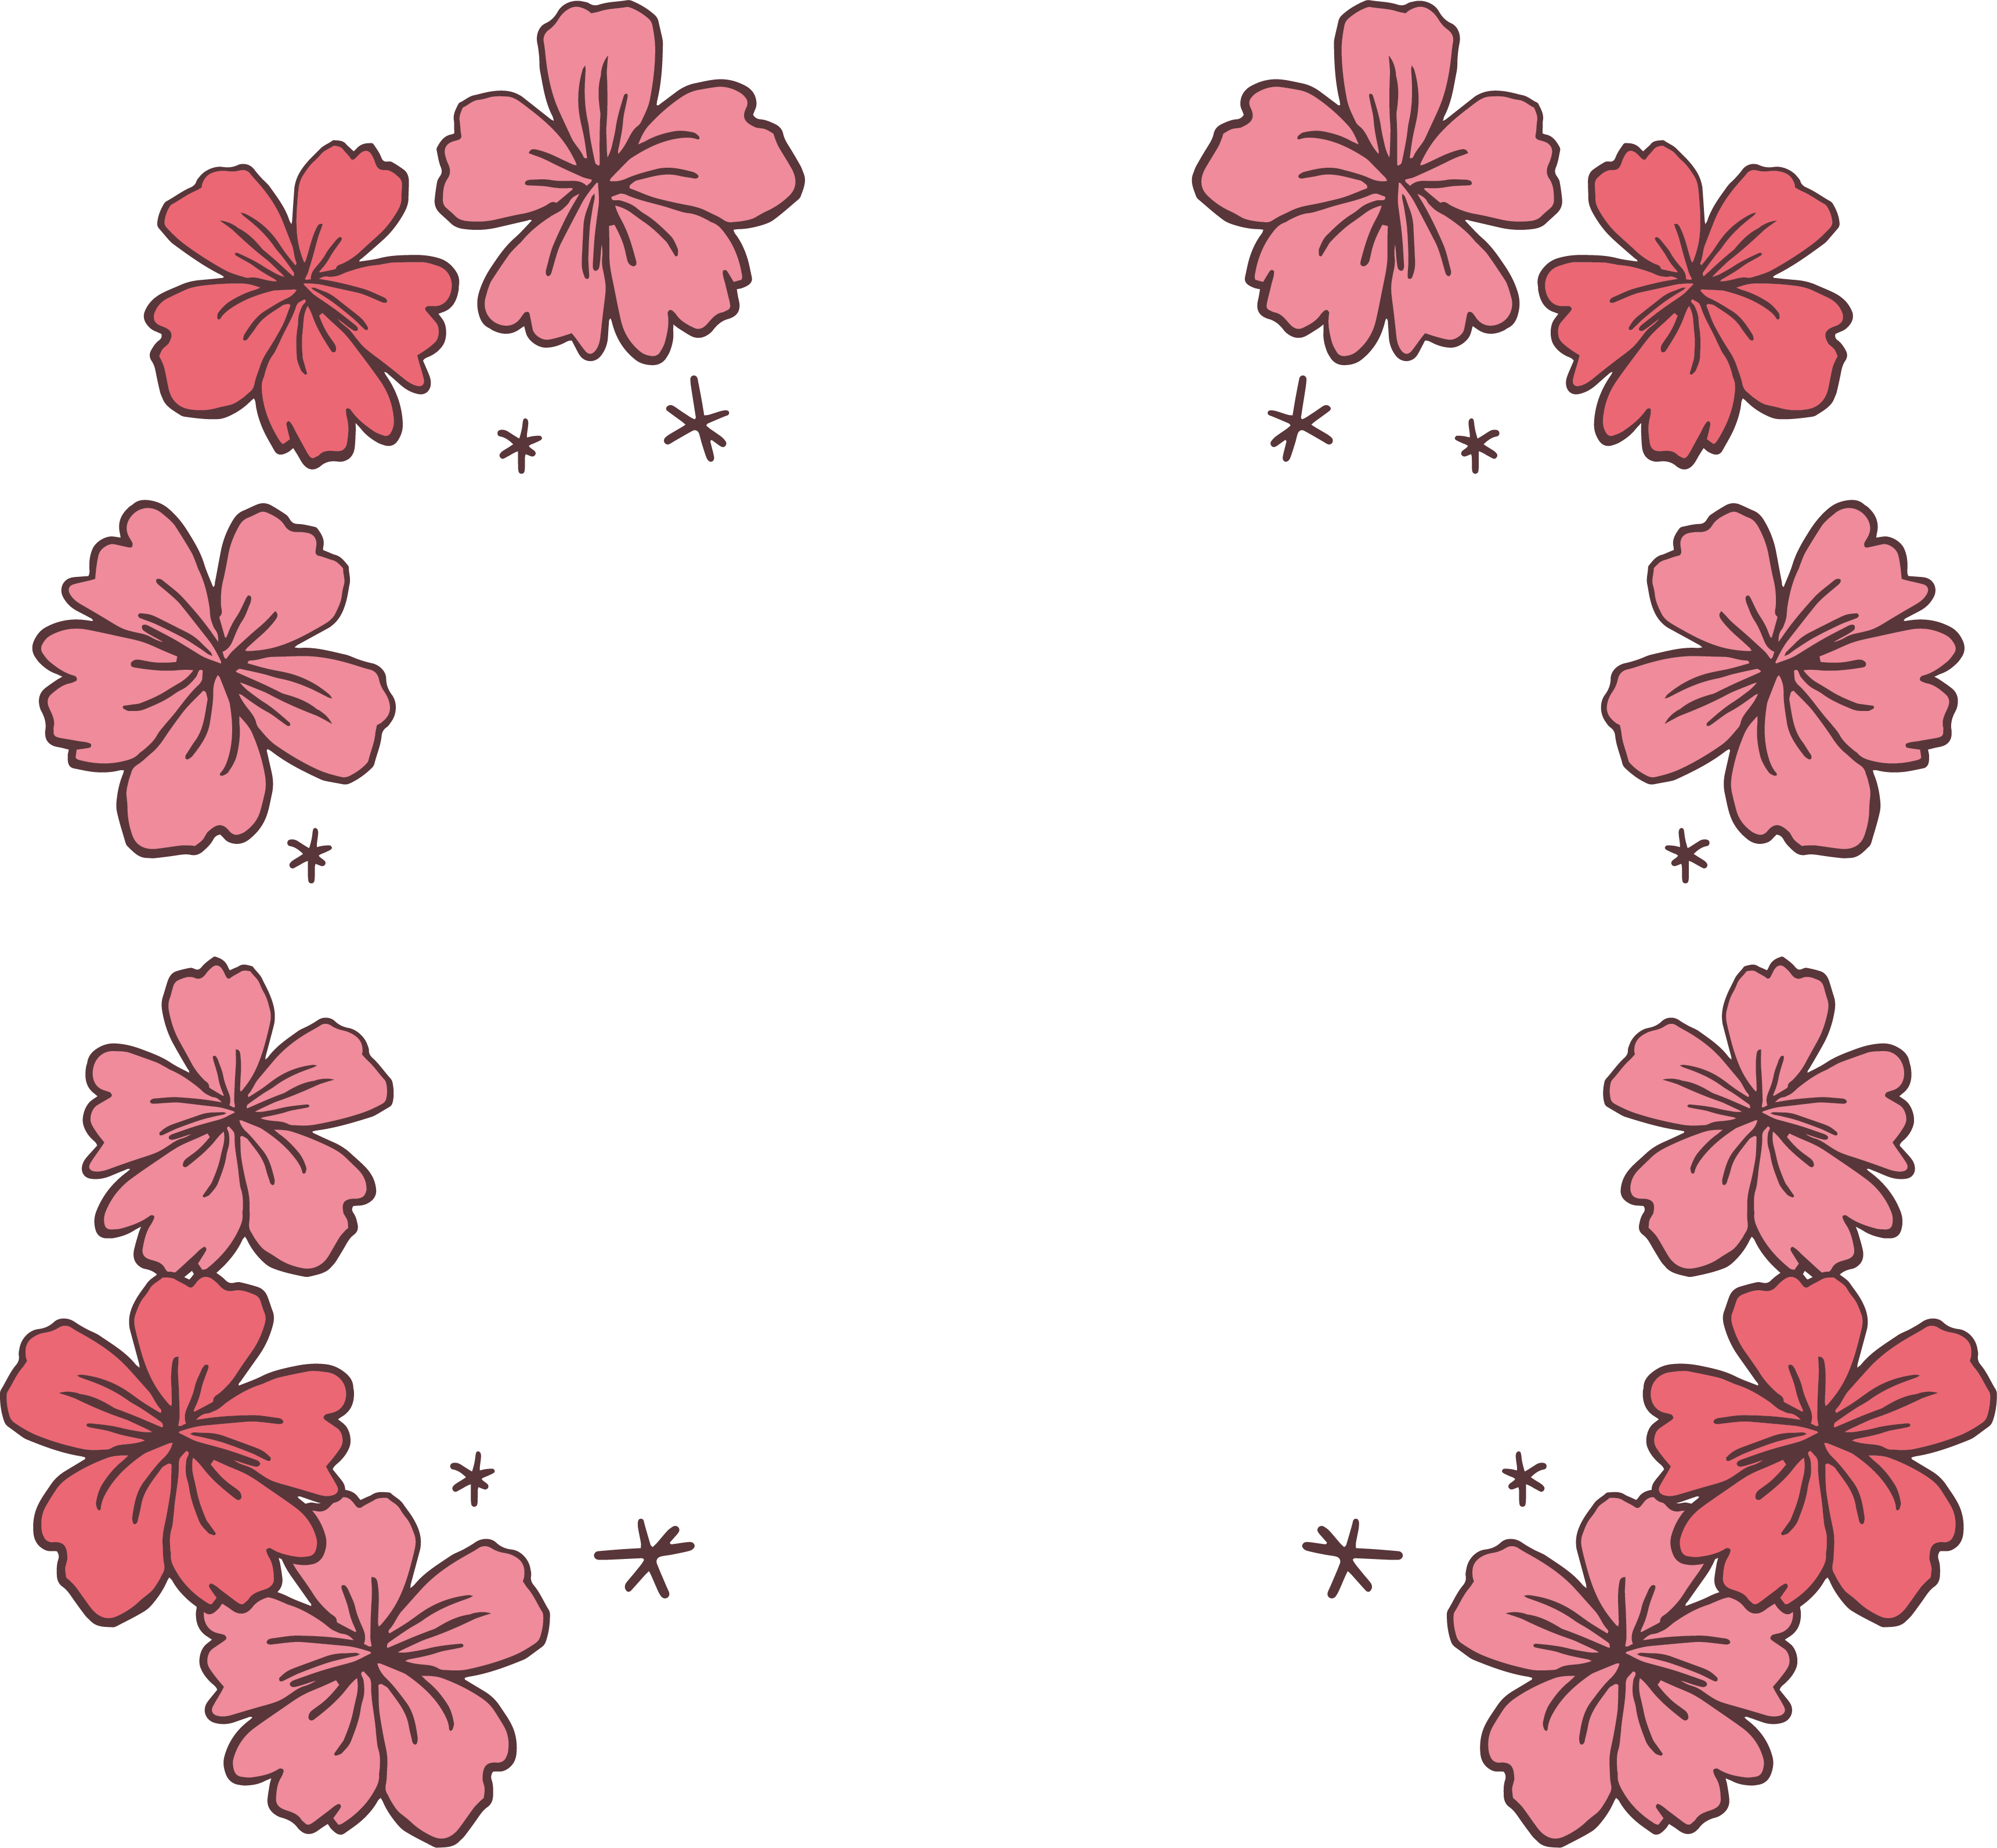 Cherry blossom border png. Pink icon hand painted